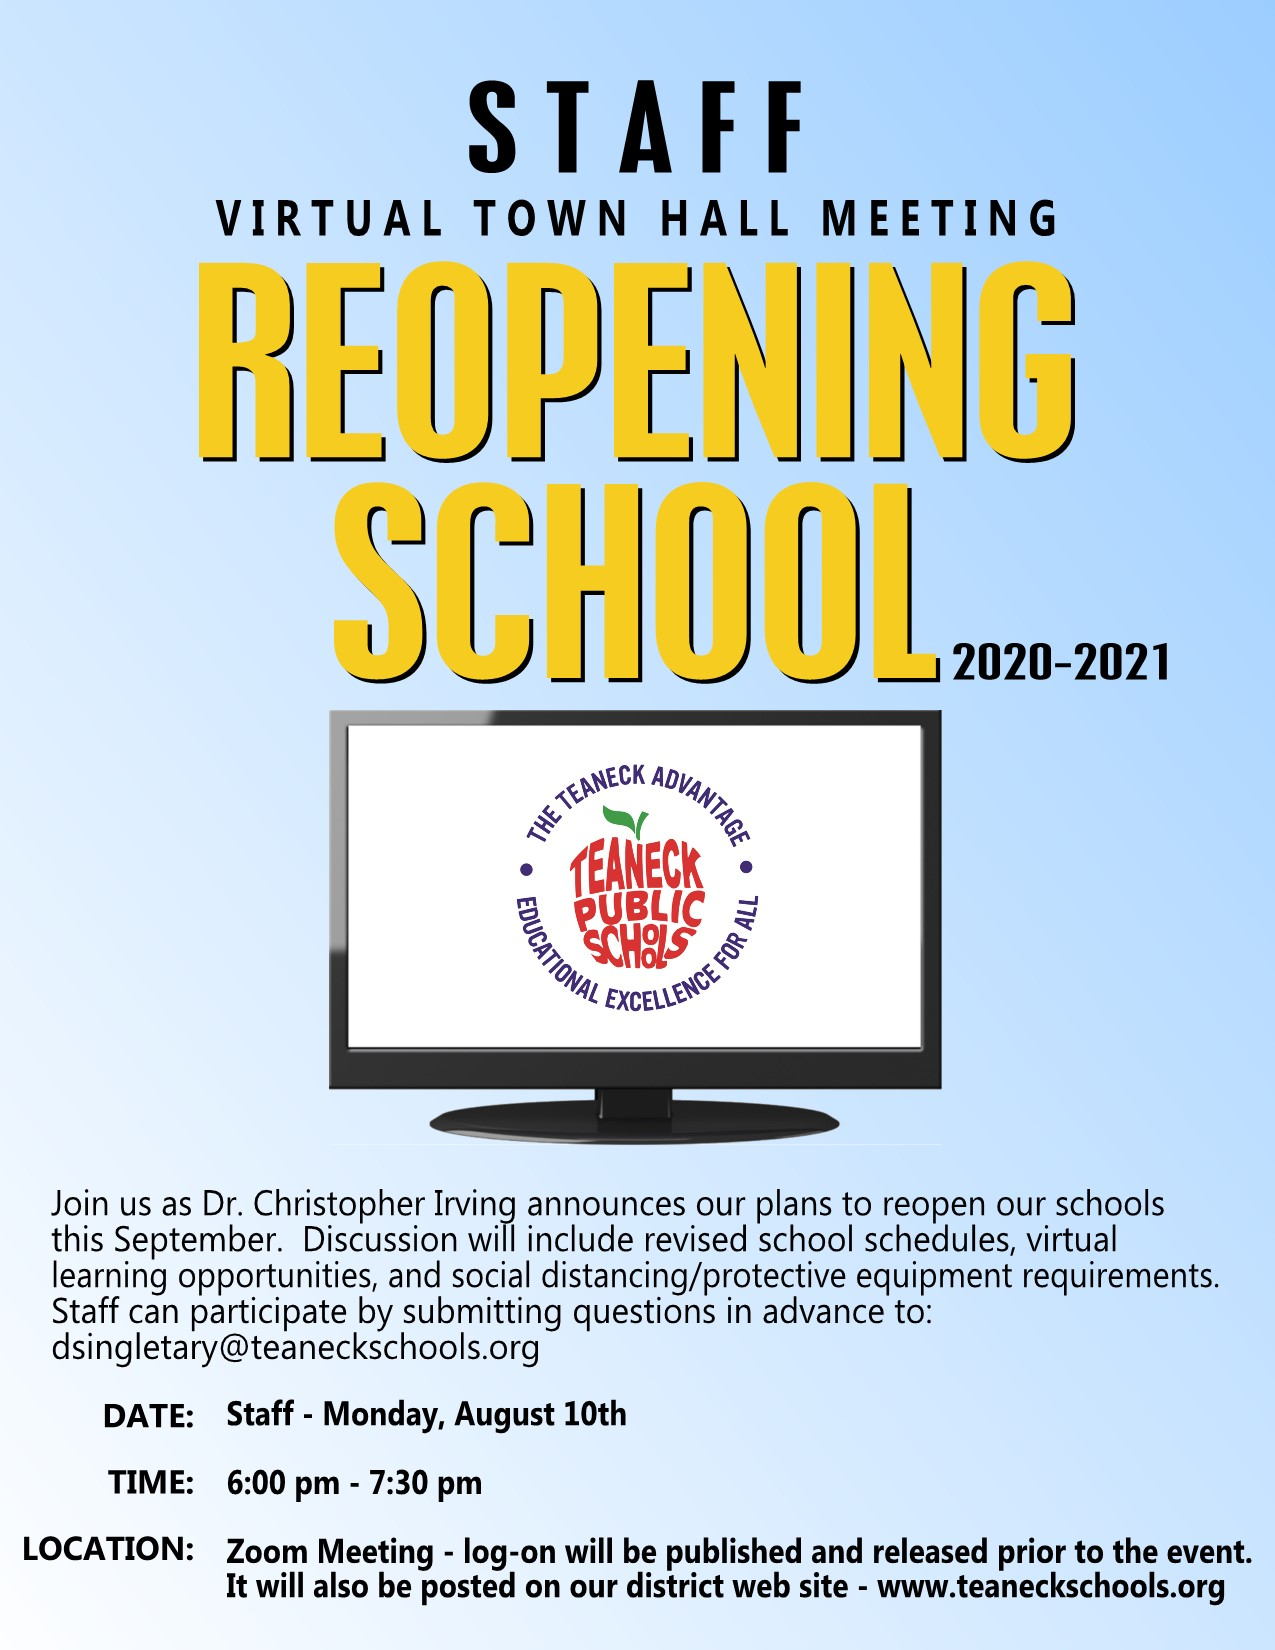 staff town hall meeting